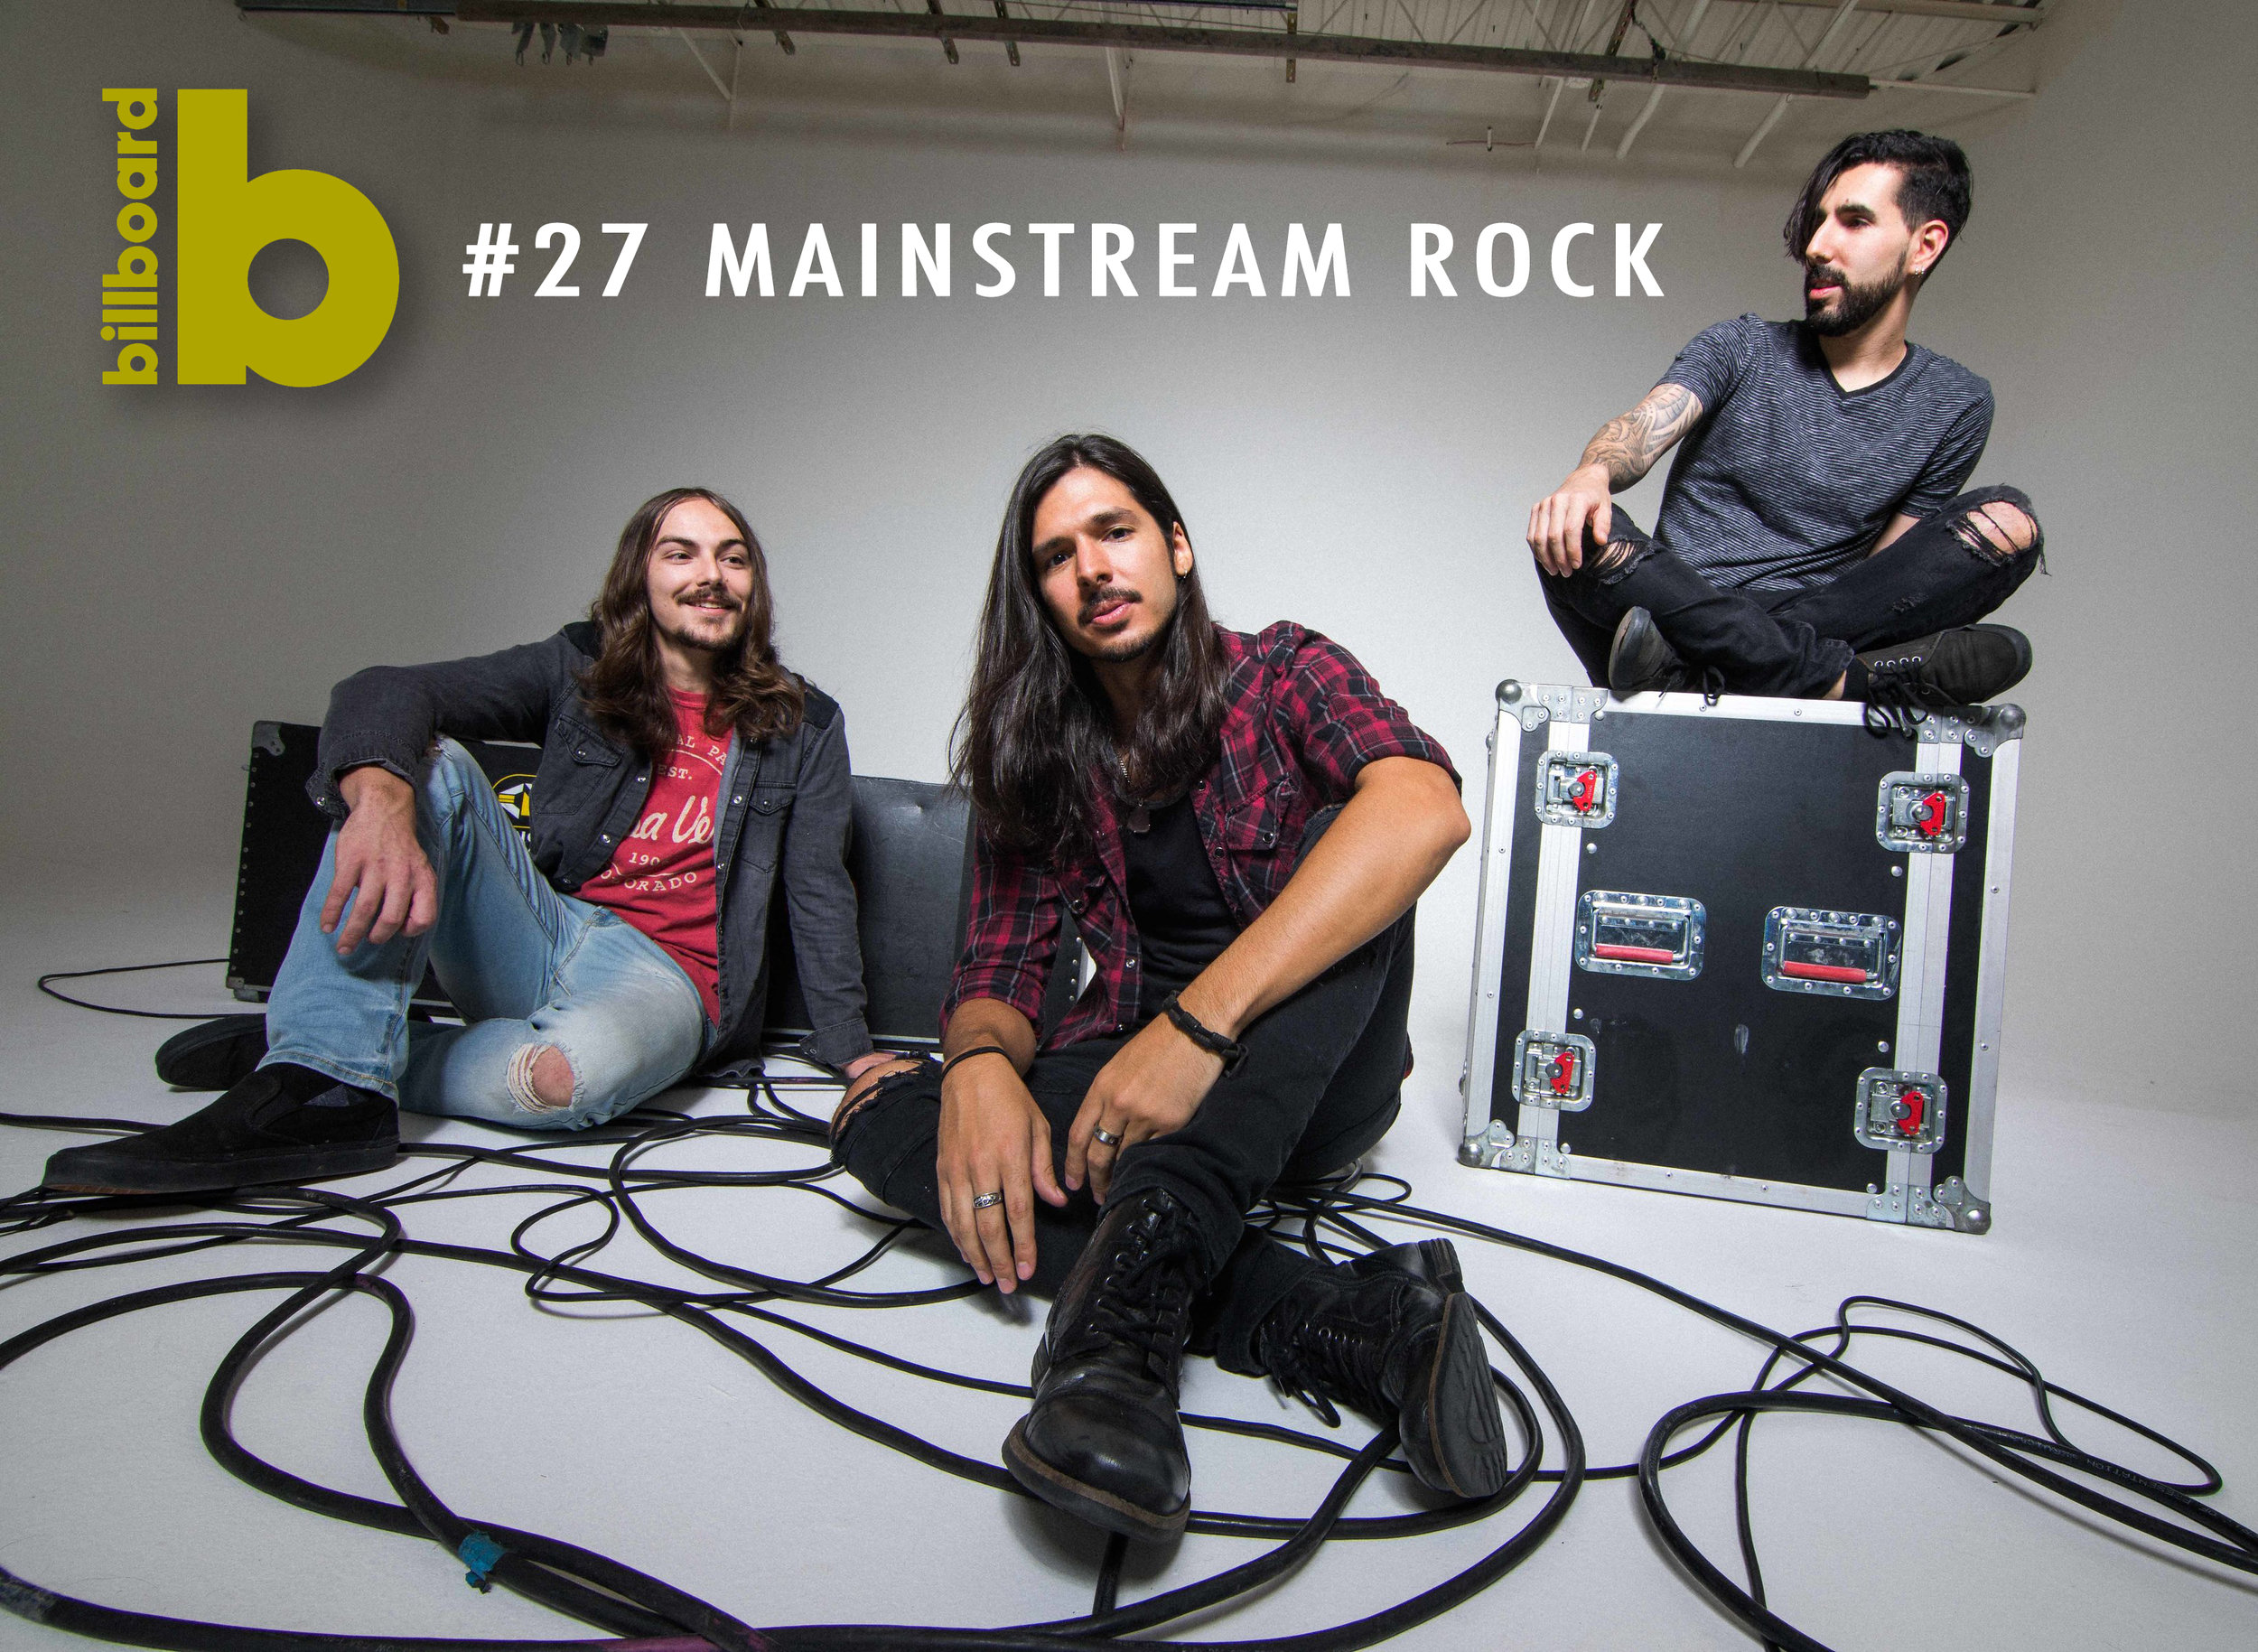 """My World"" hits #27 on Billboard Mainstream Rock Charts - March 6th, 2019"